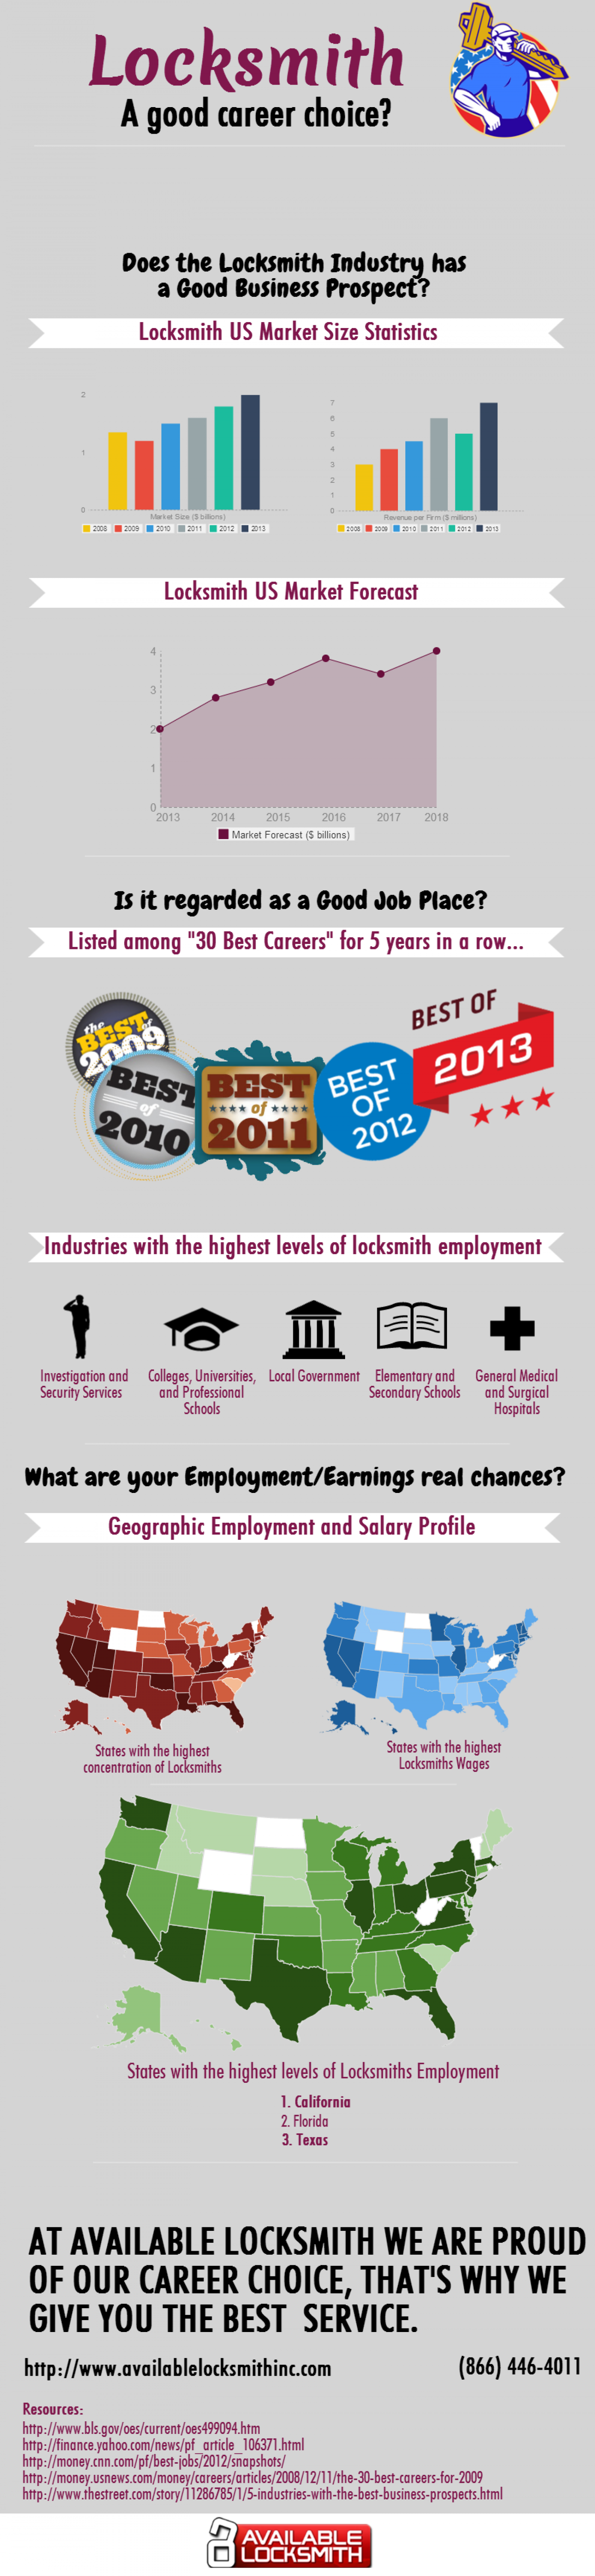 Locksmith A Good Career Choice? Infographic